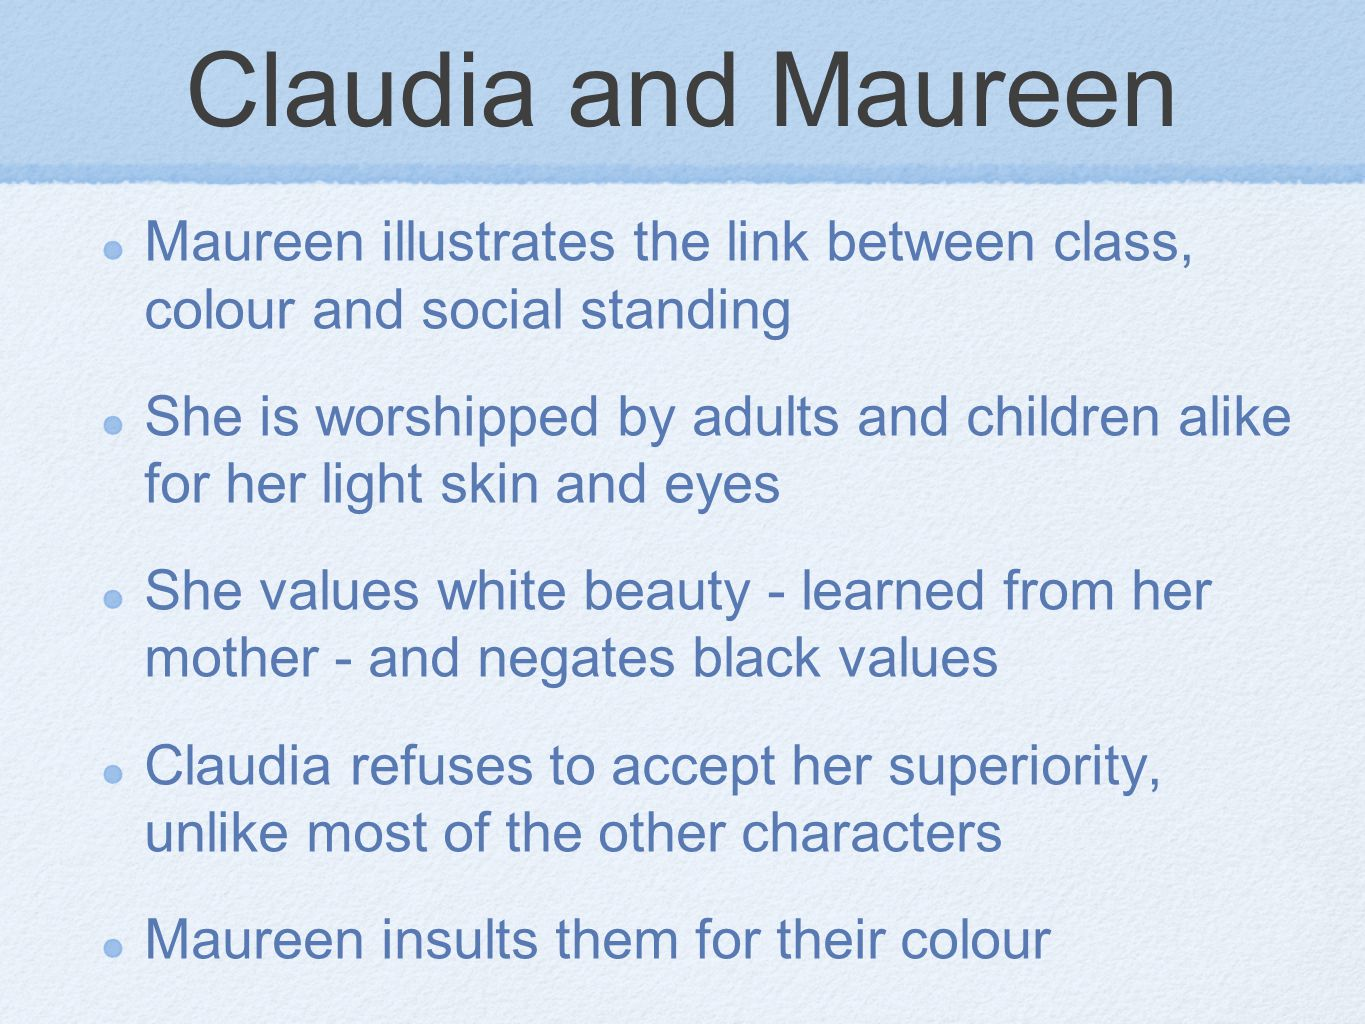 Claudia and Maureen Maureen illustrates the link between class, colour and social standing.